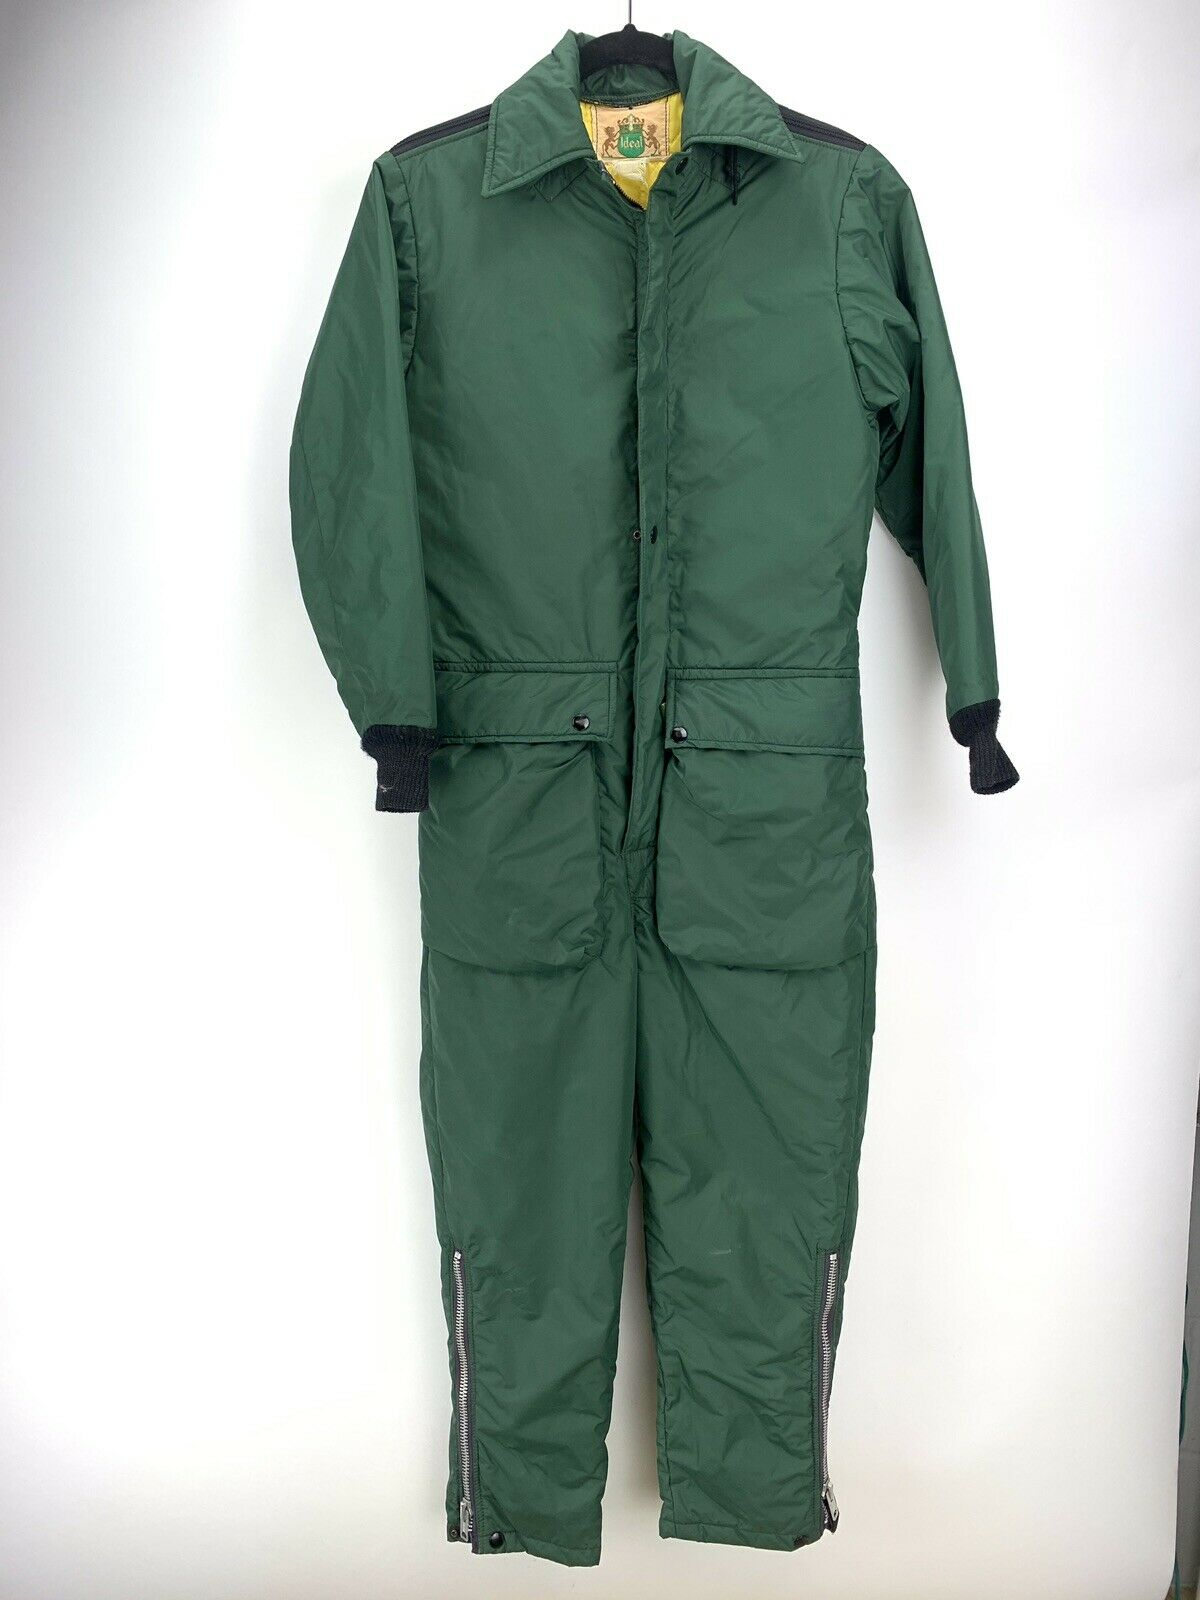 Vtg  Ideal Co lls Snow Suit Sz S Green Yellow Lining Jump Suit  there are more brands of high-quality goods